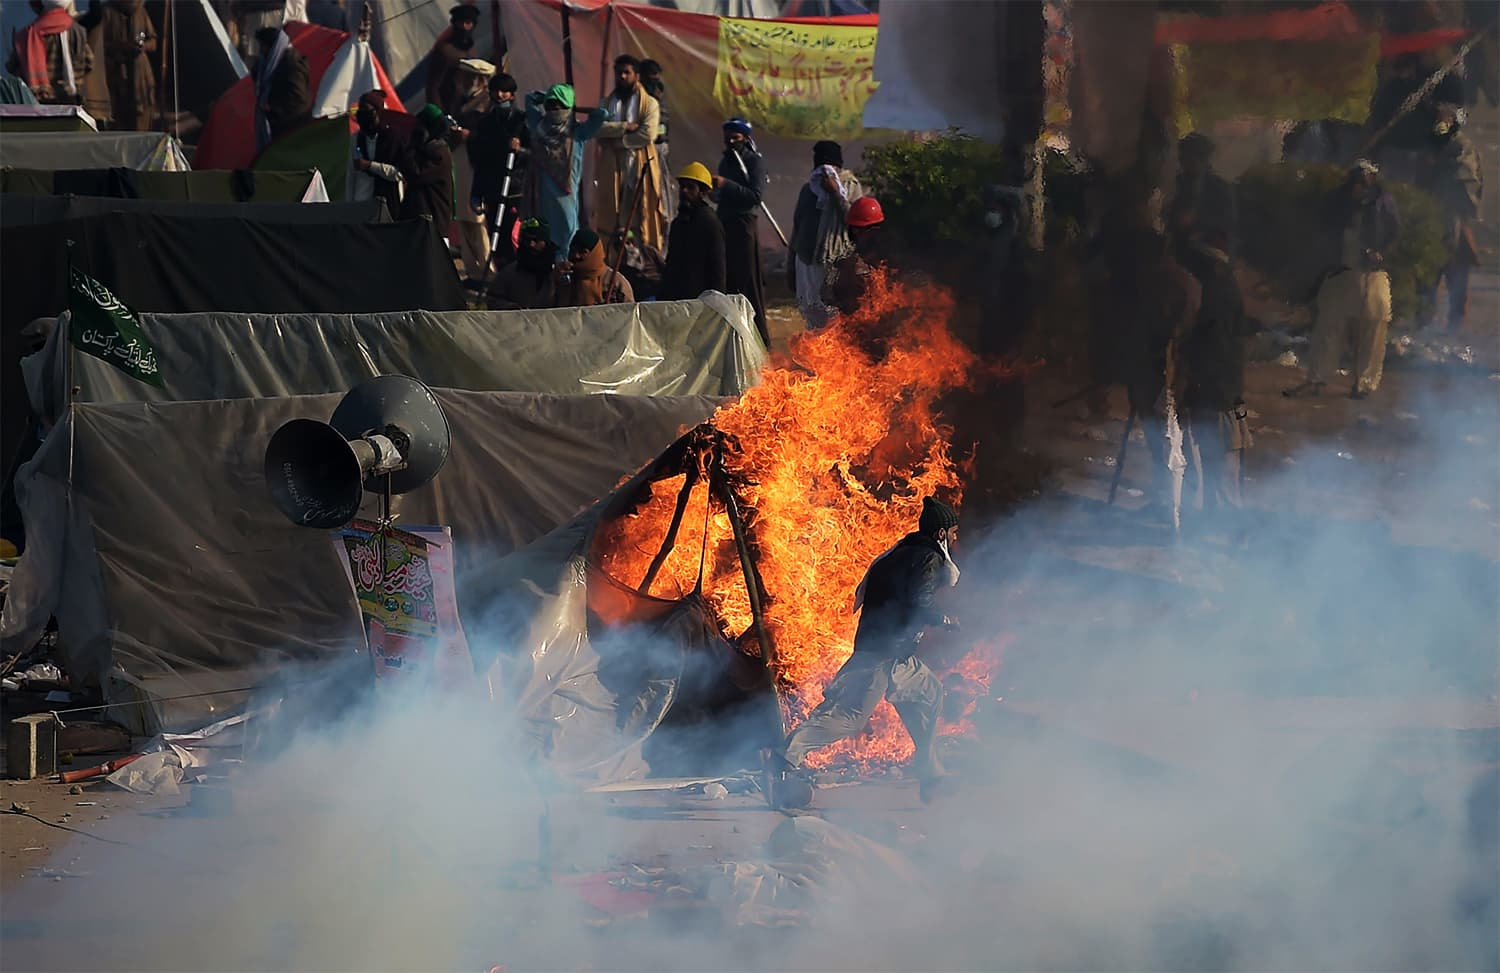 A TLY protester runs past a burning tent during a clash with police in Islamabad. ─ AFP